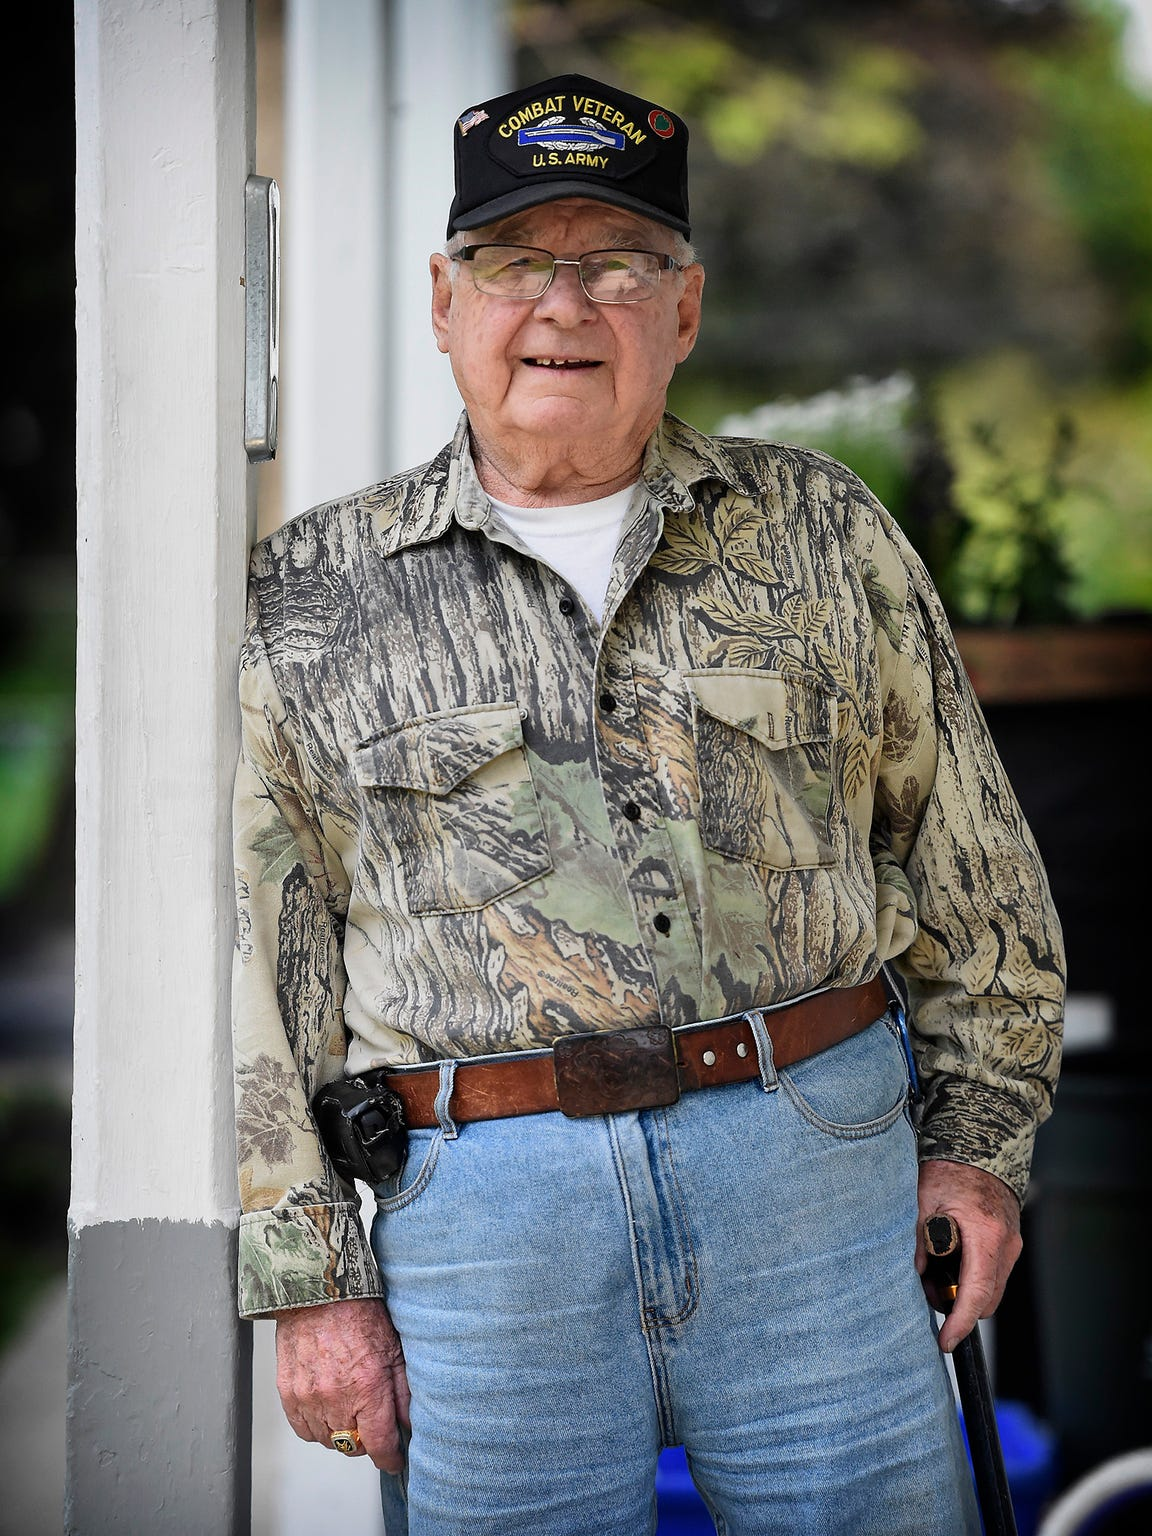 Korean War veteran Vince Bentz, of Annville, was one of the first Americans to fight in Korea.